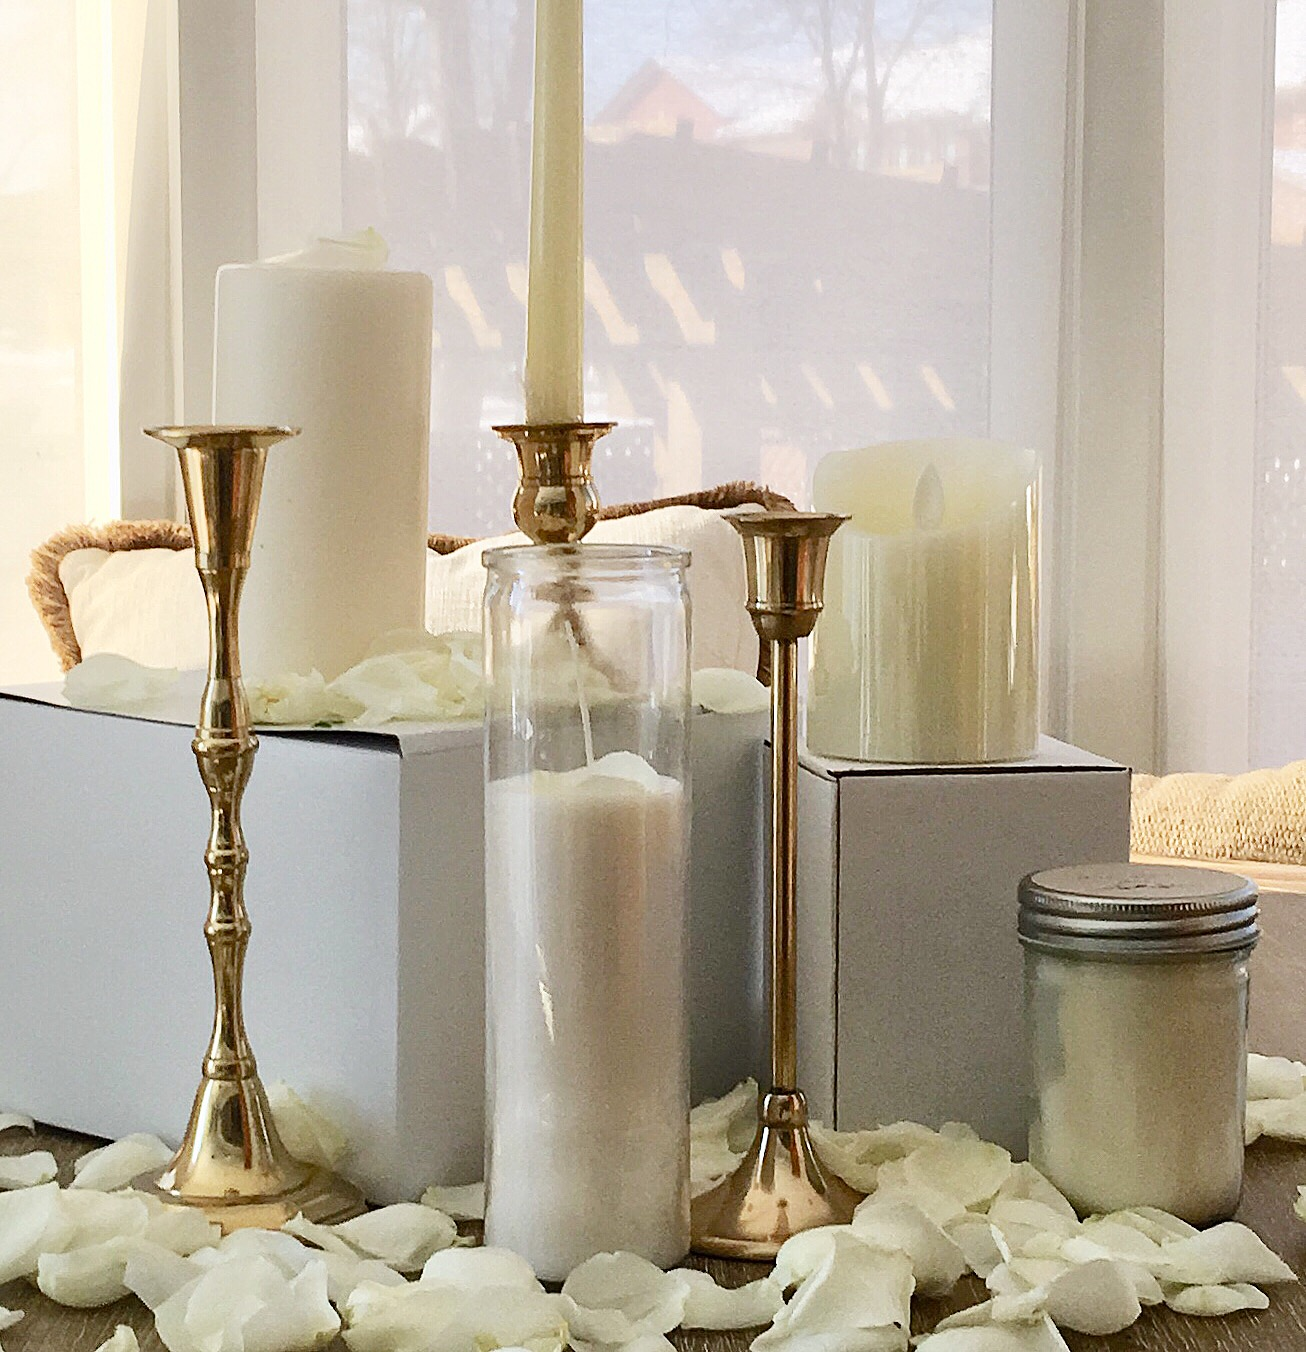 Event Planning - Party favours, vases, candles, everything you need to make your event memorable.